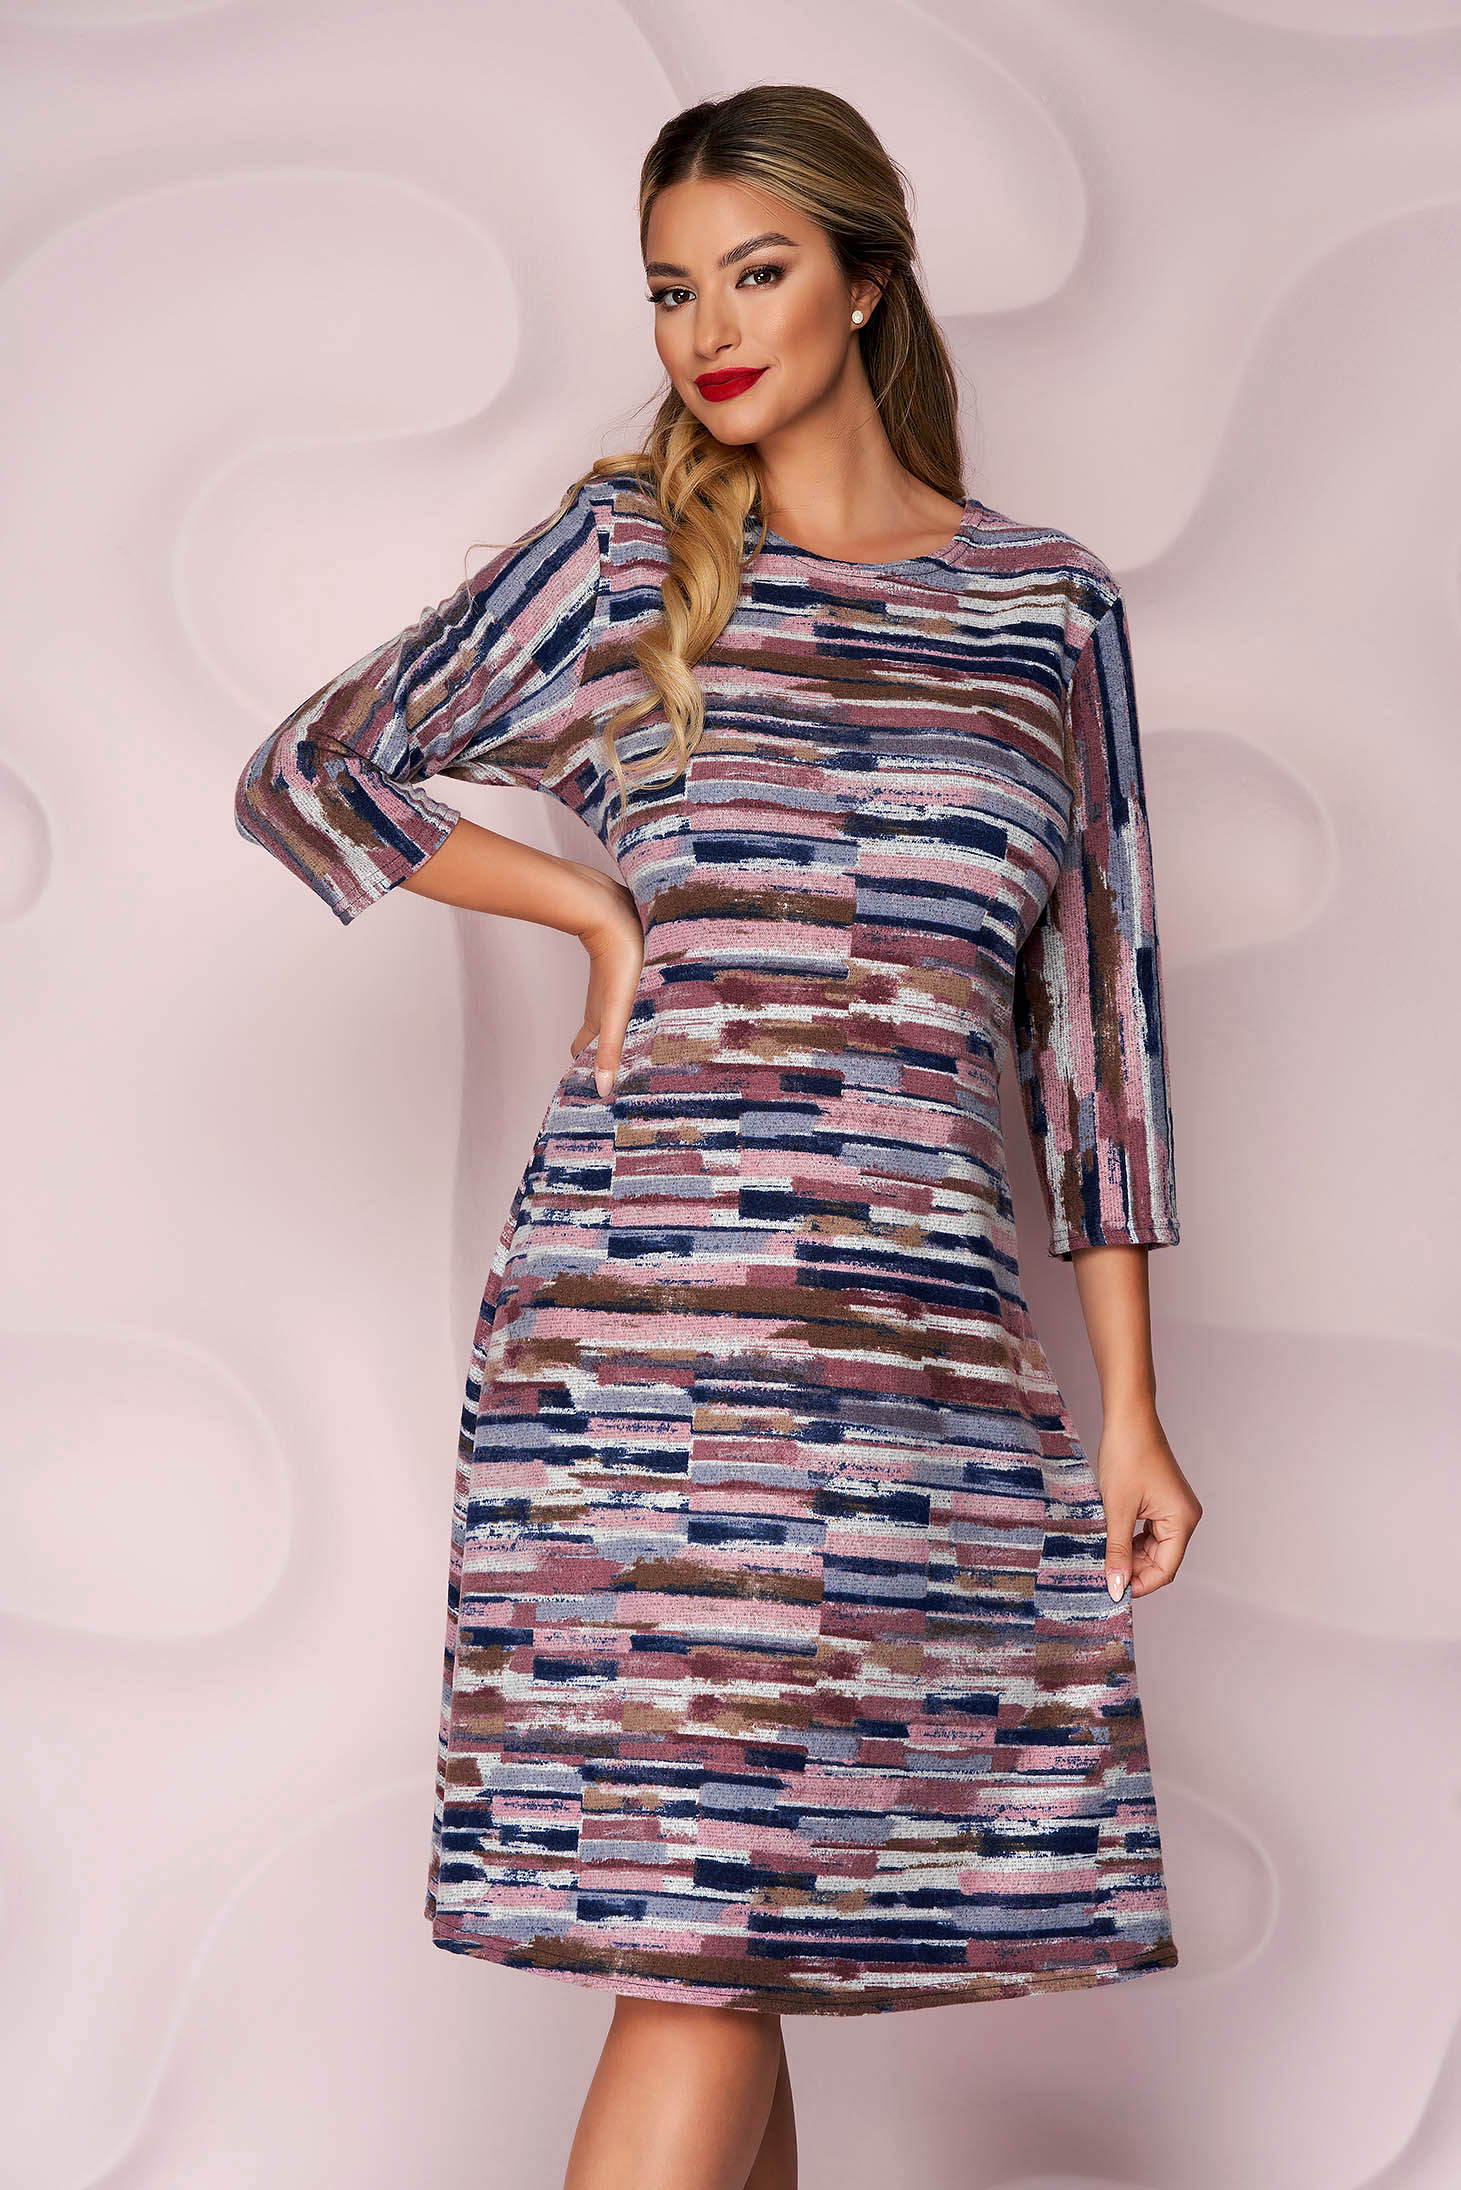 Dress loose fit knitted thin fabric from elastic fabric